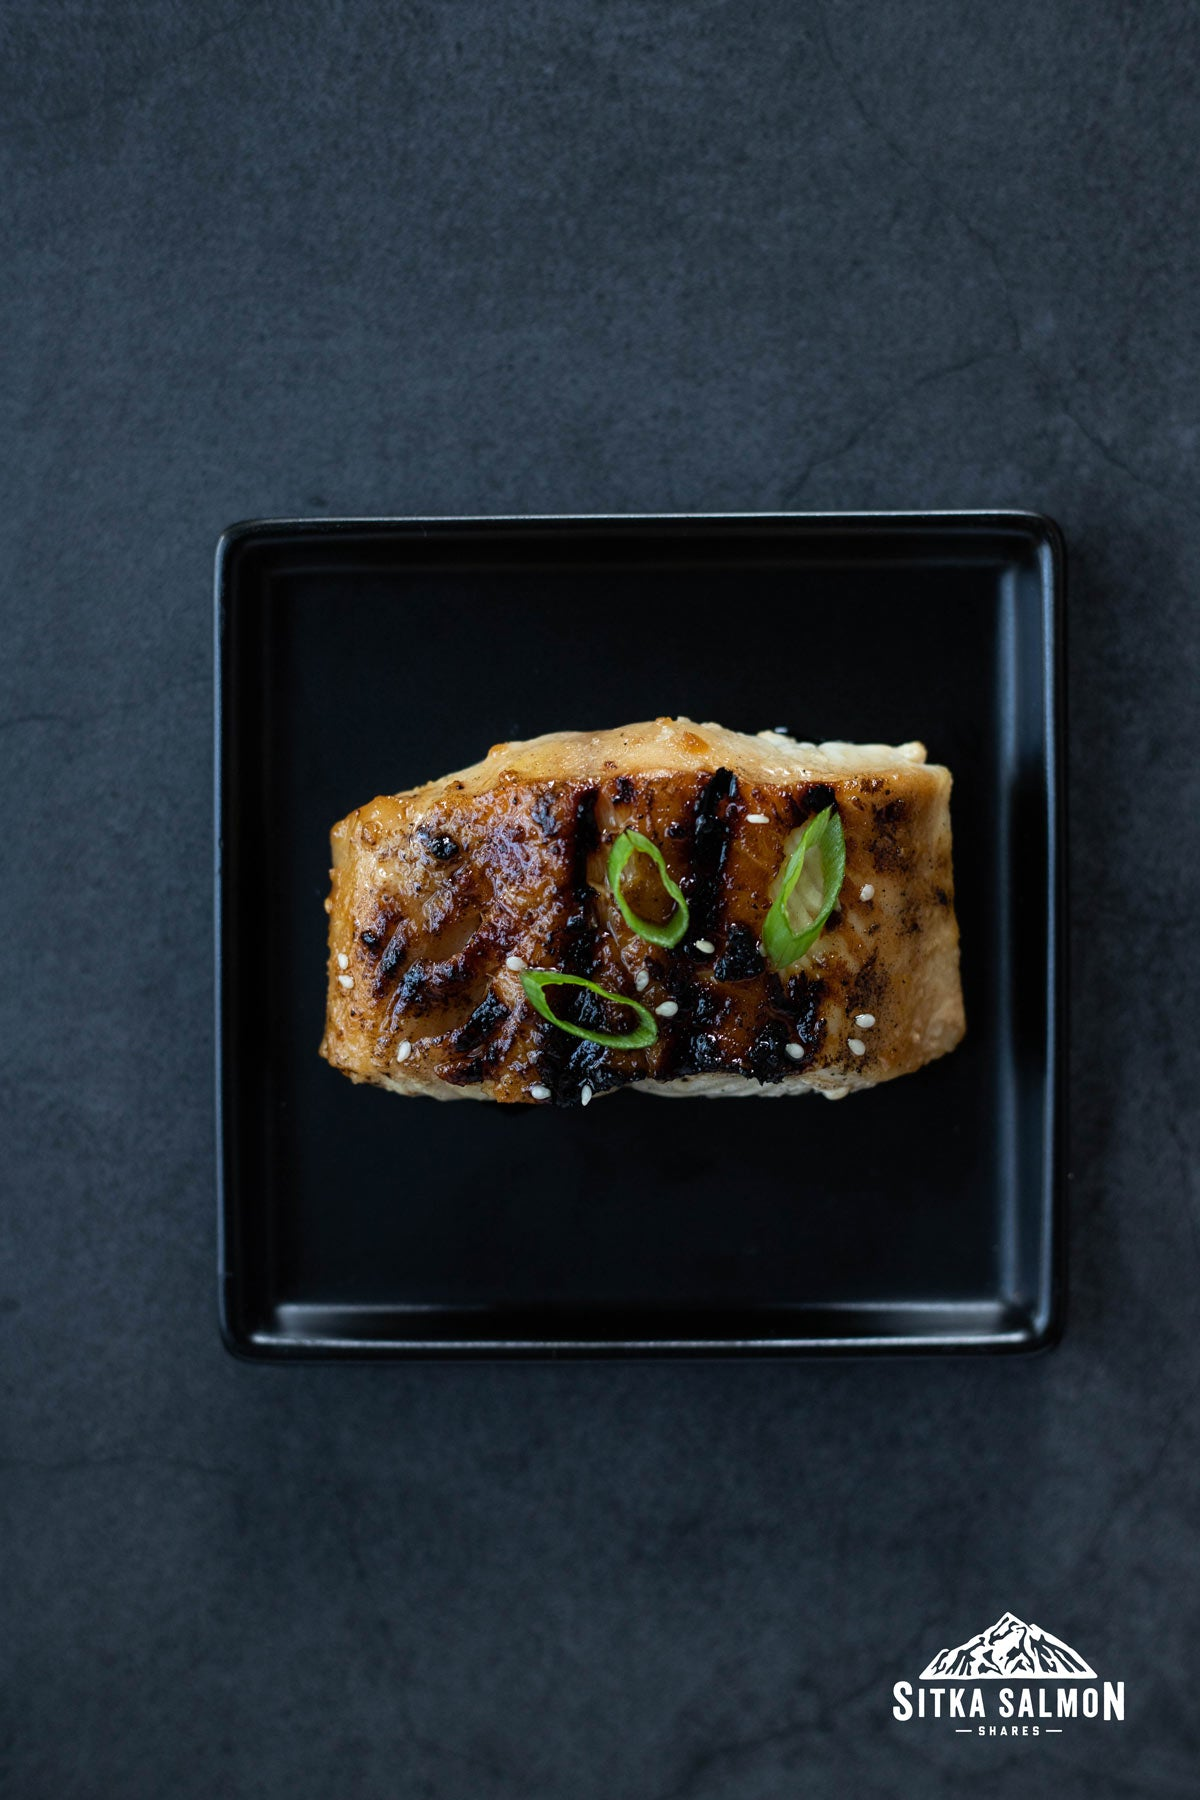 Stu Weathers' Teriyaki Sablefish (Black Cod) Recipe | Sitka Salmon Shares